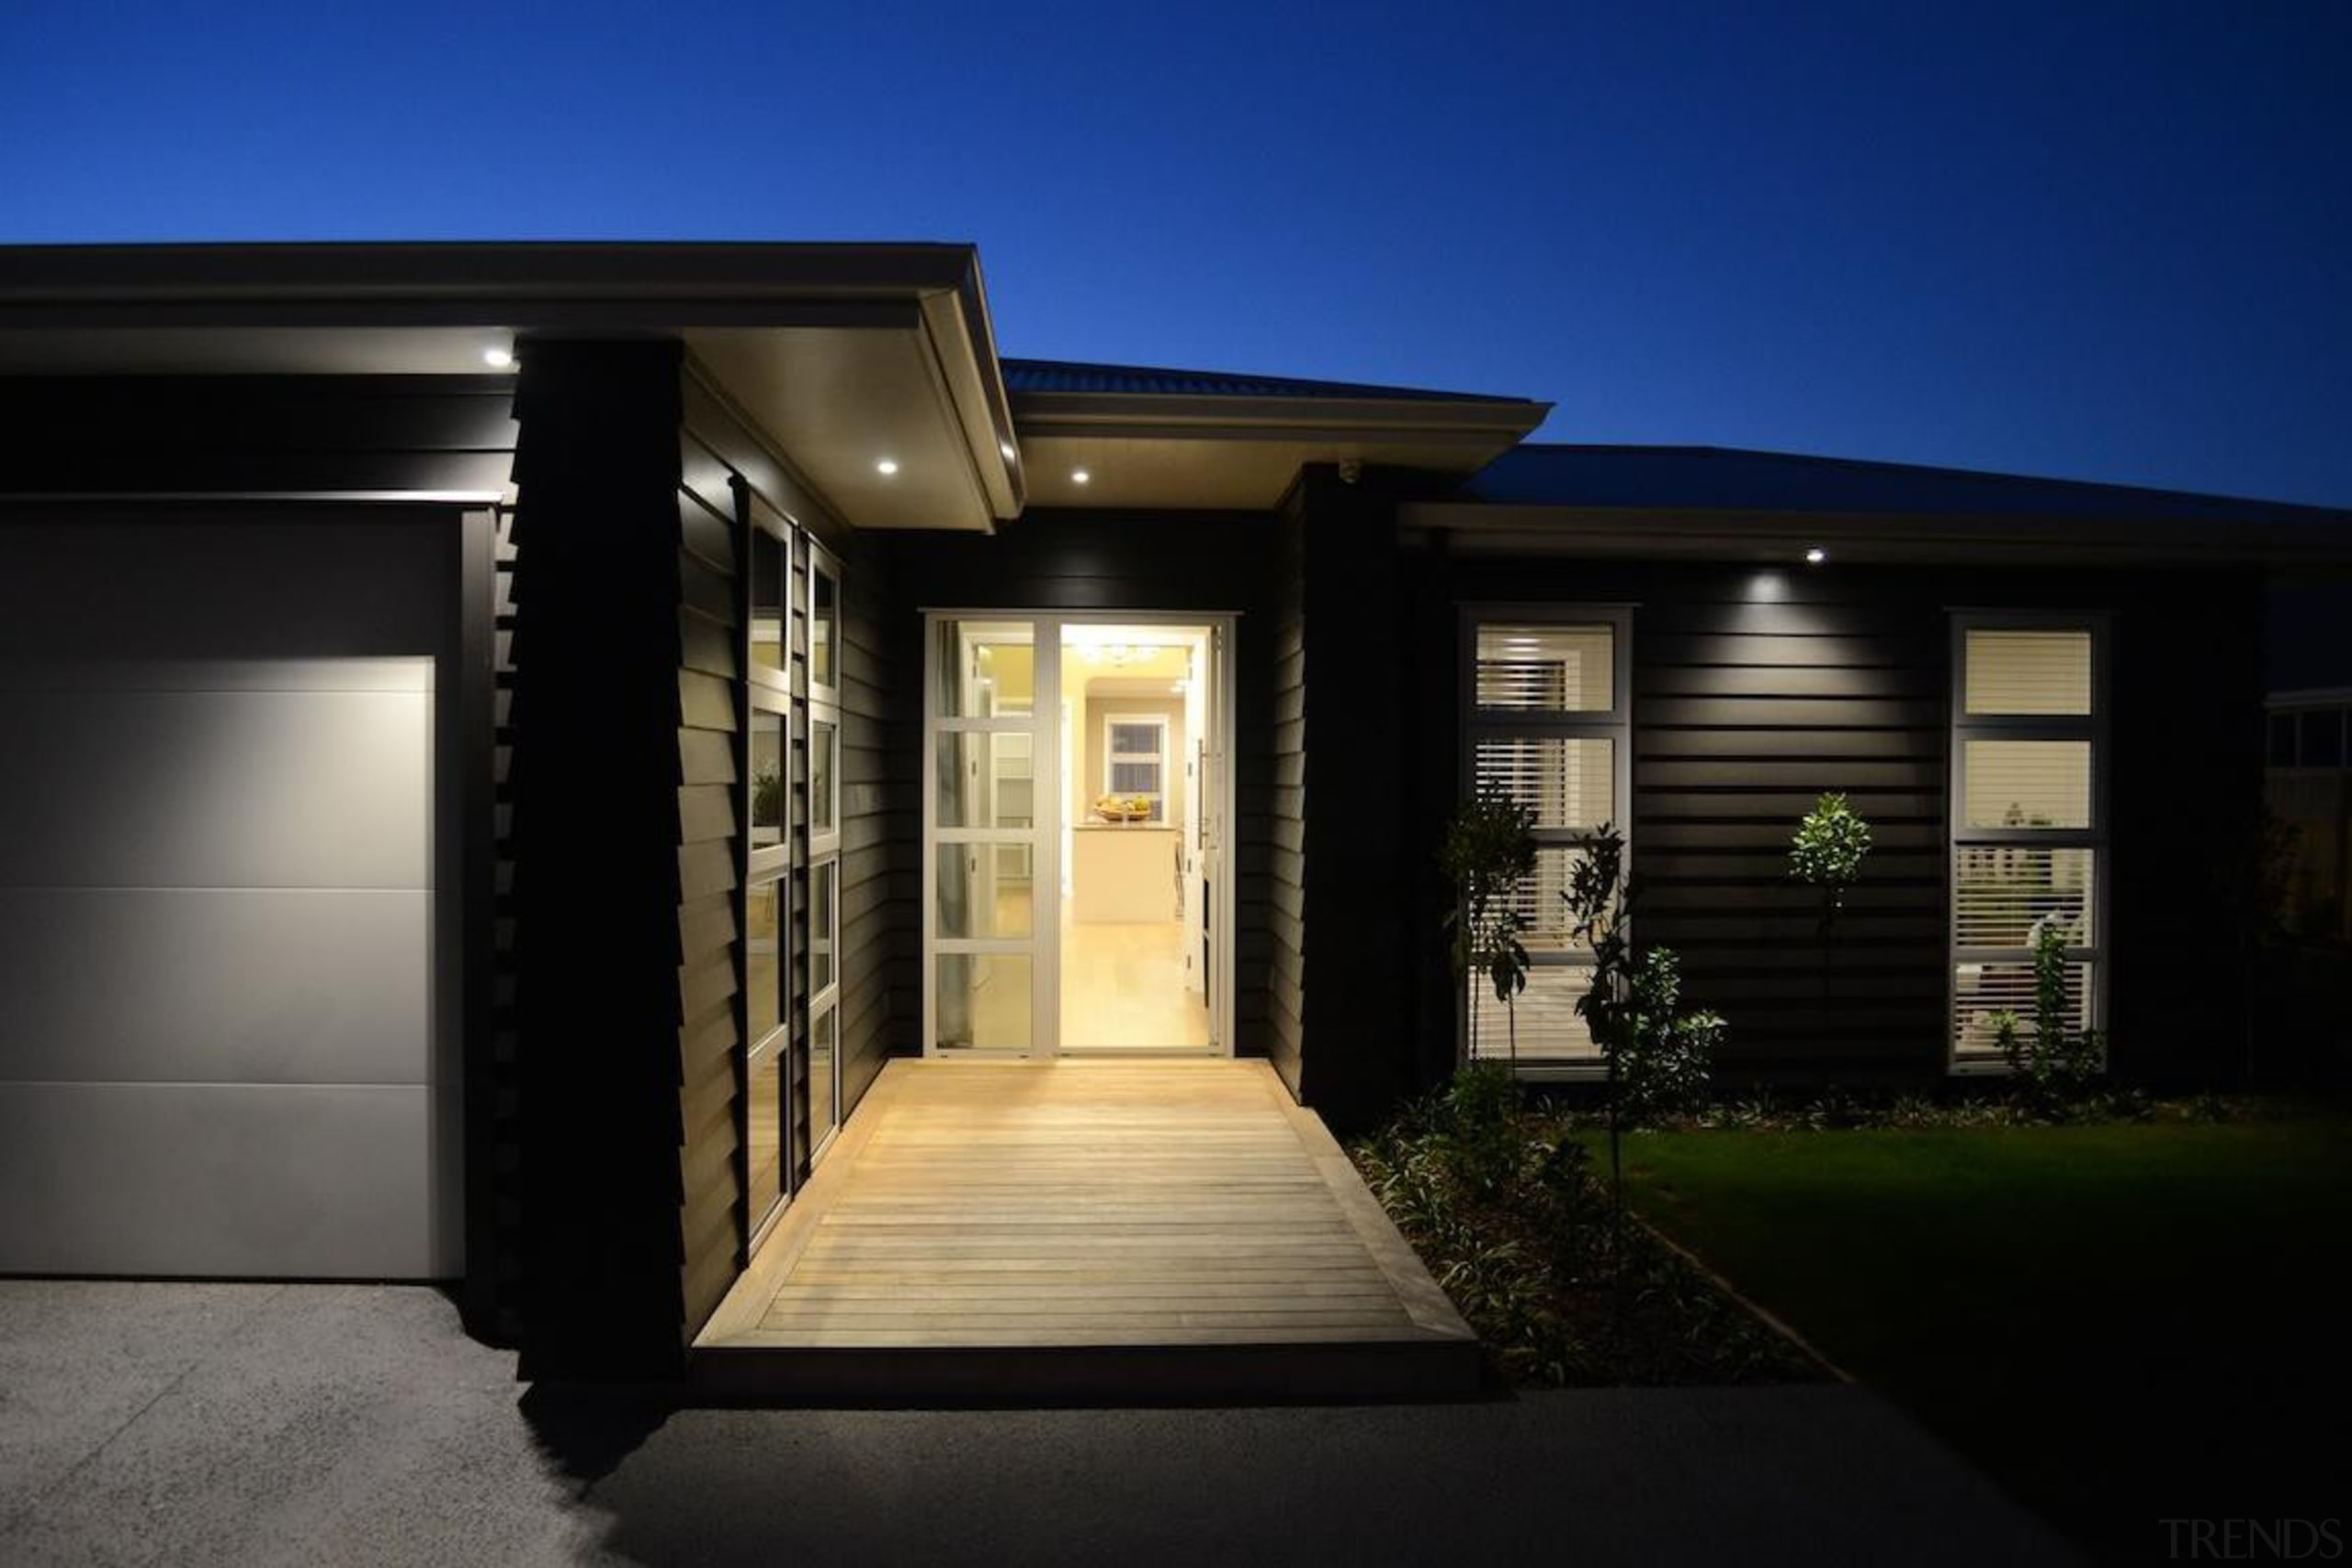 A timber board walk leads to the entry architecture, building, estate, facade, home, house, lighting, property, real estate, window, black